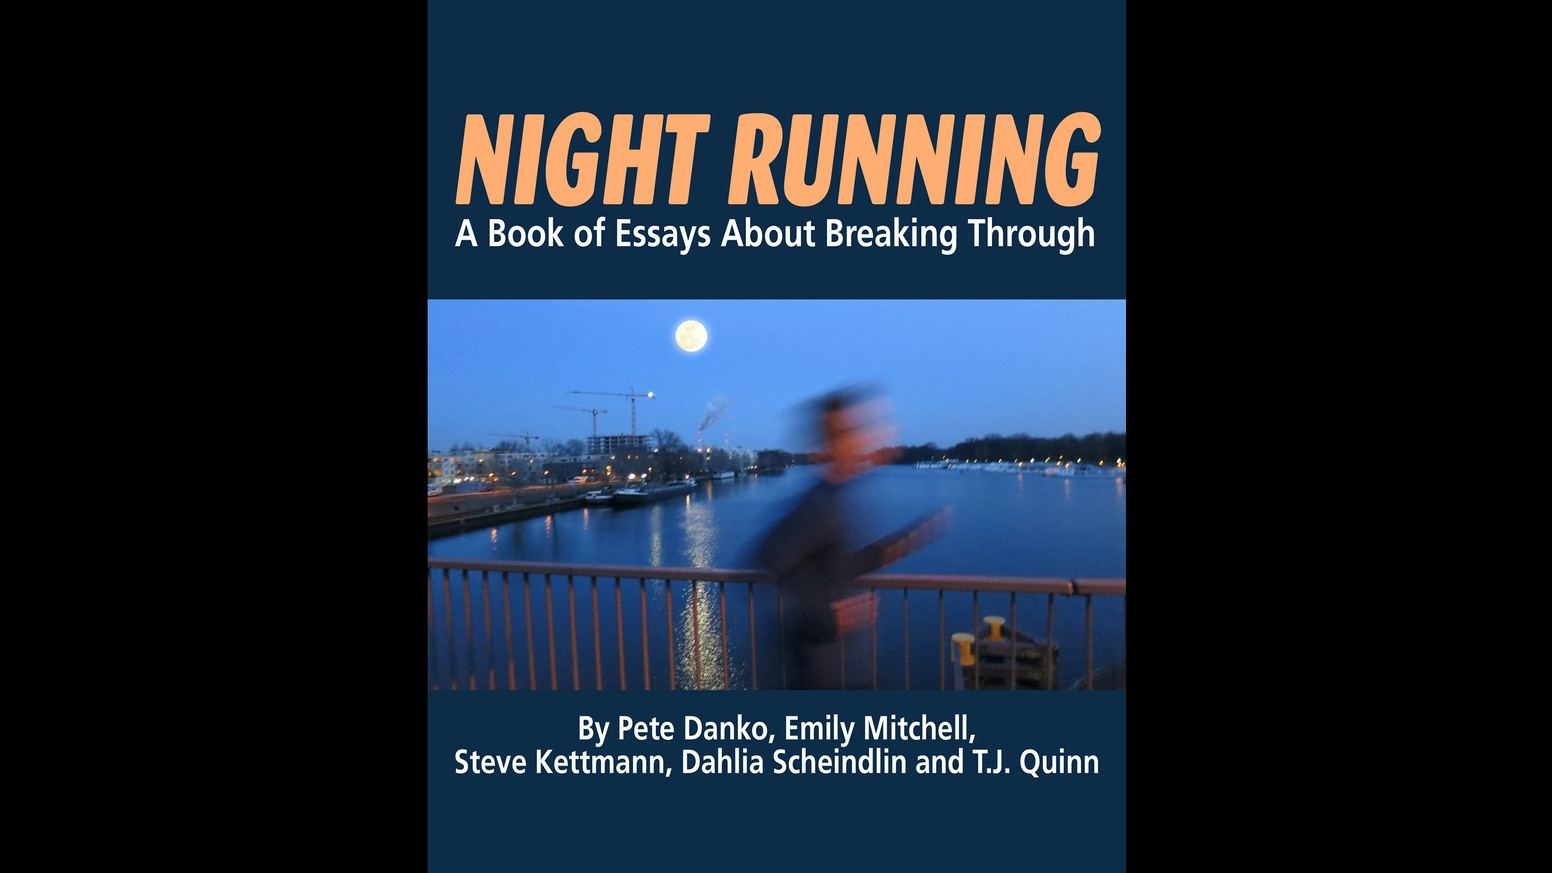 night running by steve kettmann  night running a book of essays is a project about breaking through fear and other limitations to discover a new sense of possibility